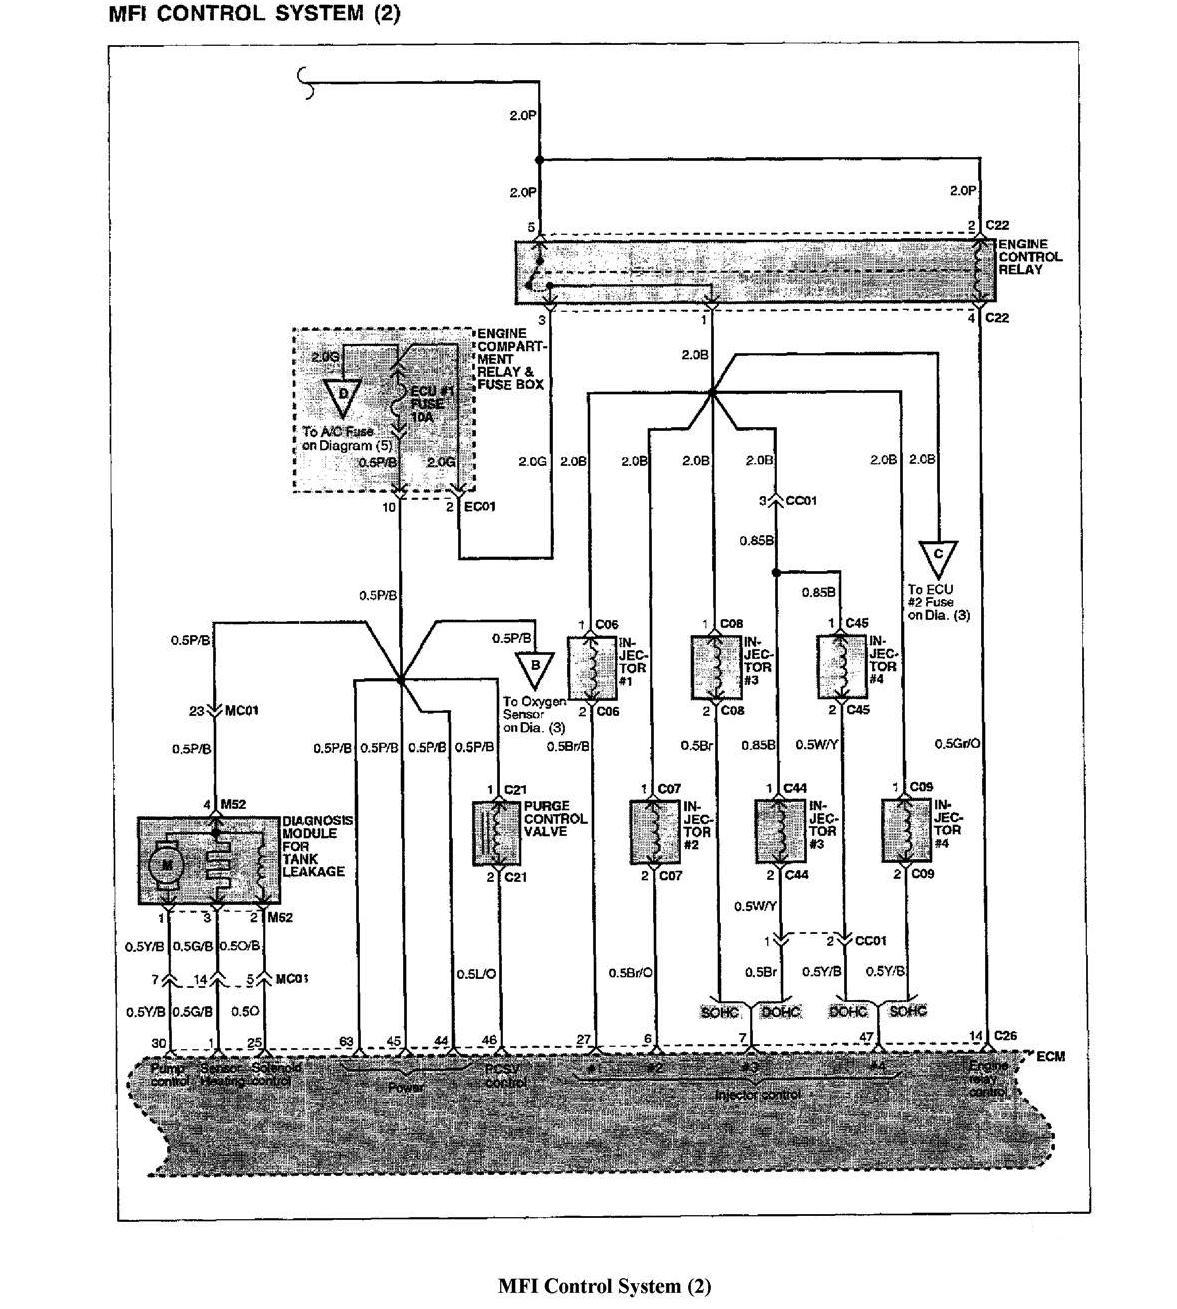 Luxury hyundai getz wiring diagram illustration the wire magnoxfo astonishing hyundai accent wiring diagram pdf pictures best image asfbconference2016 Choice Image